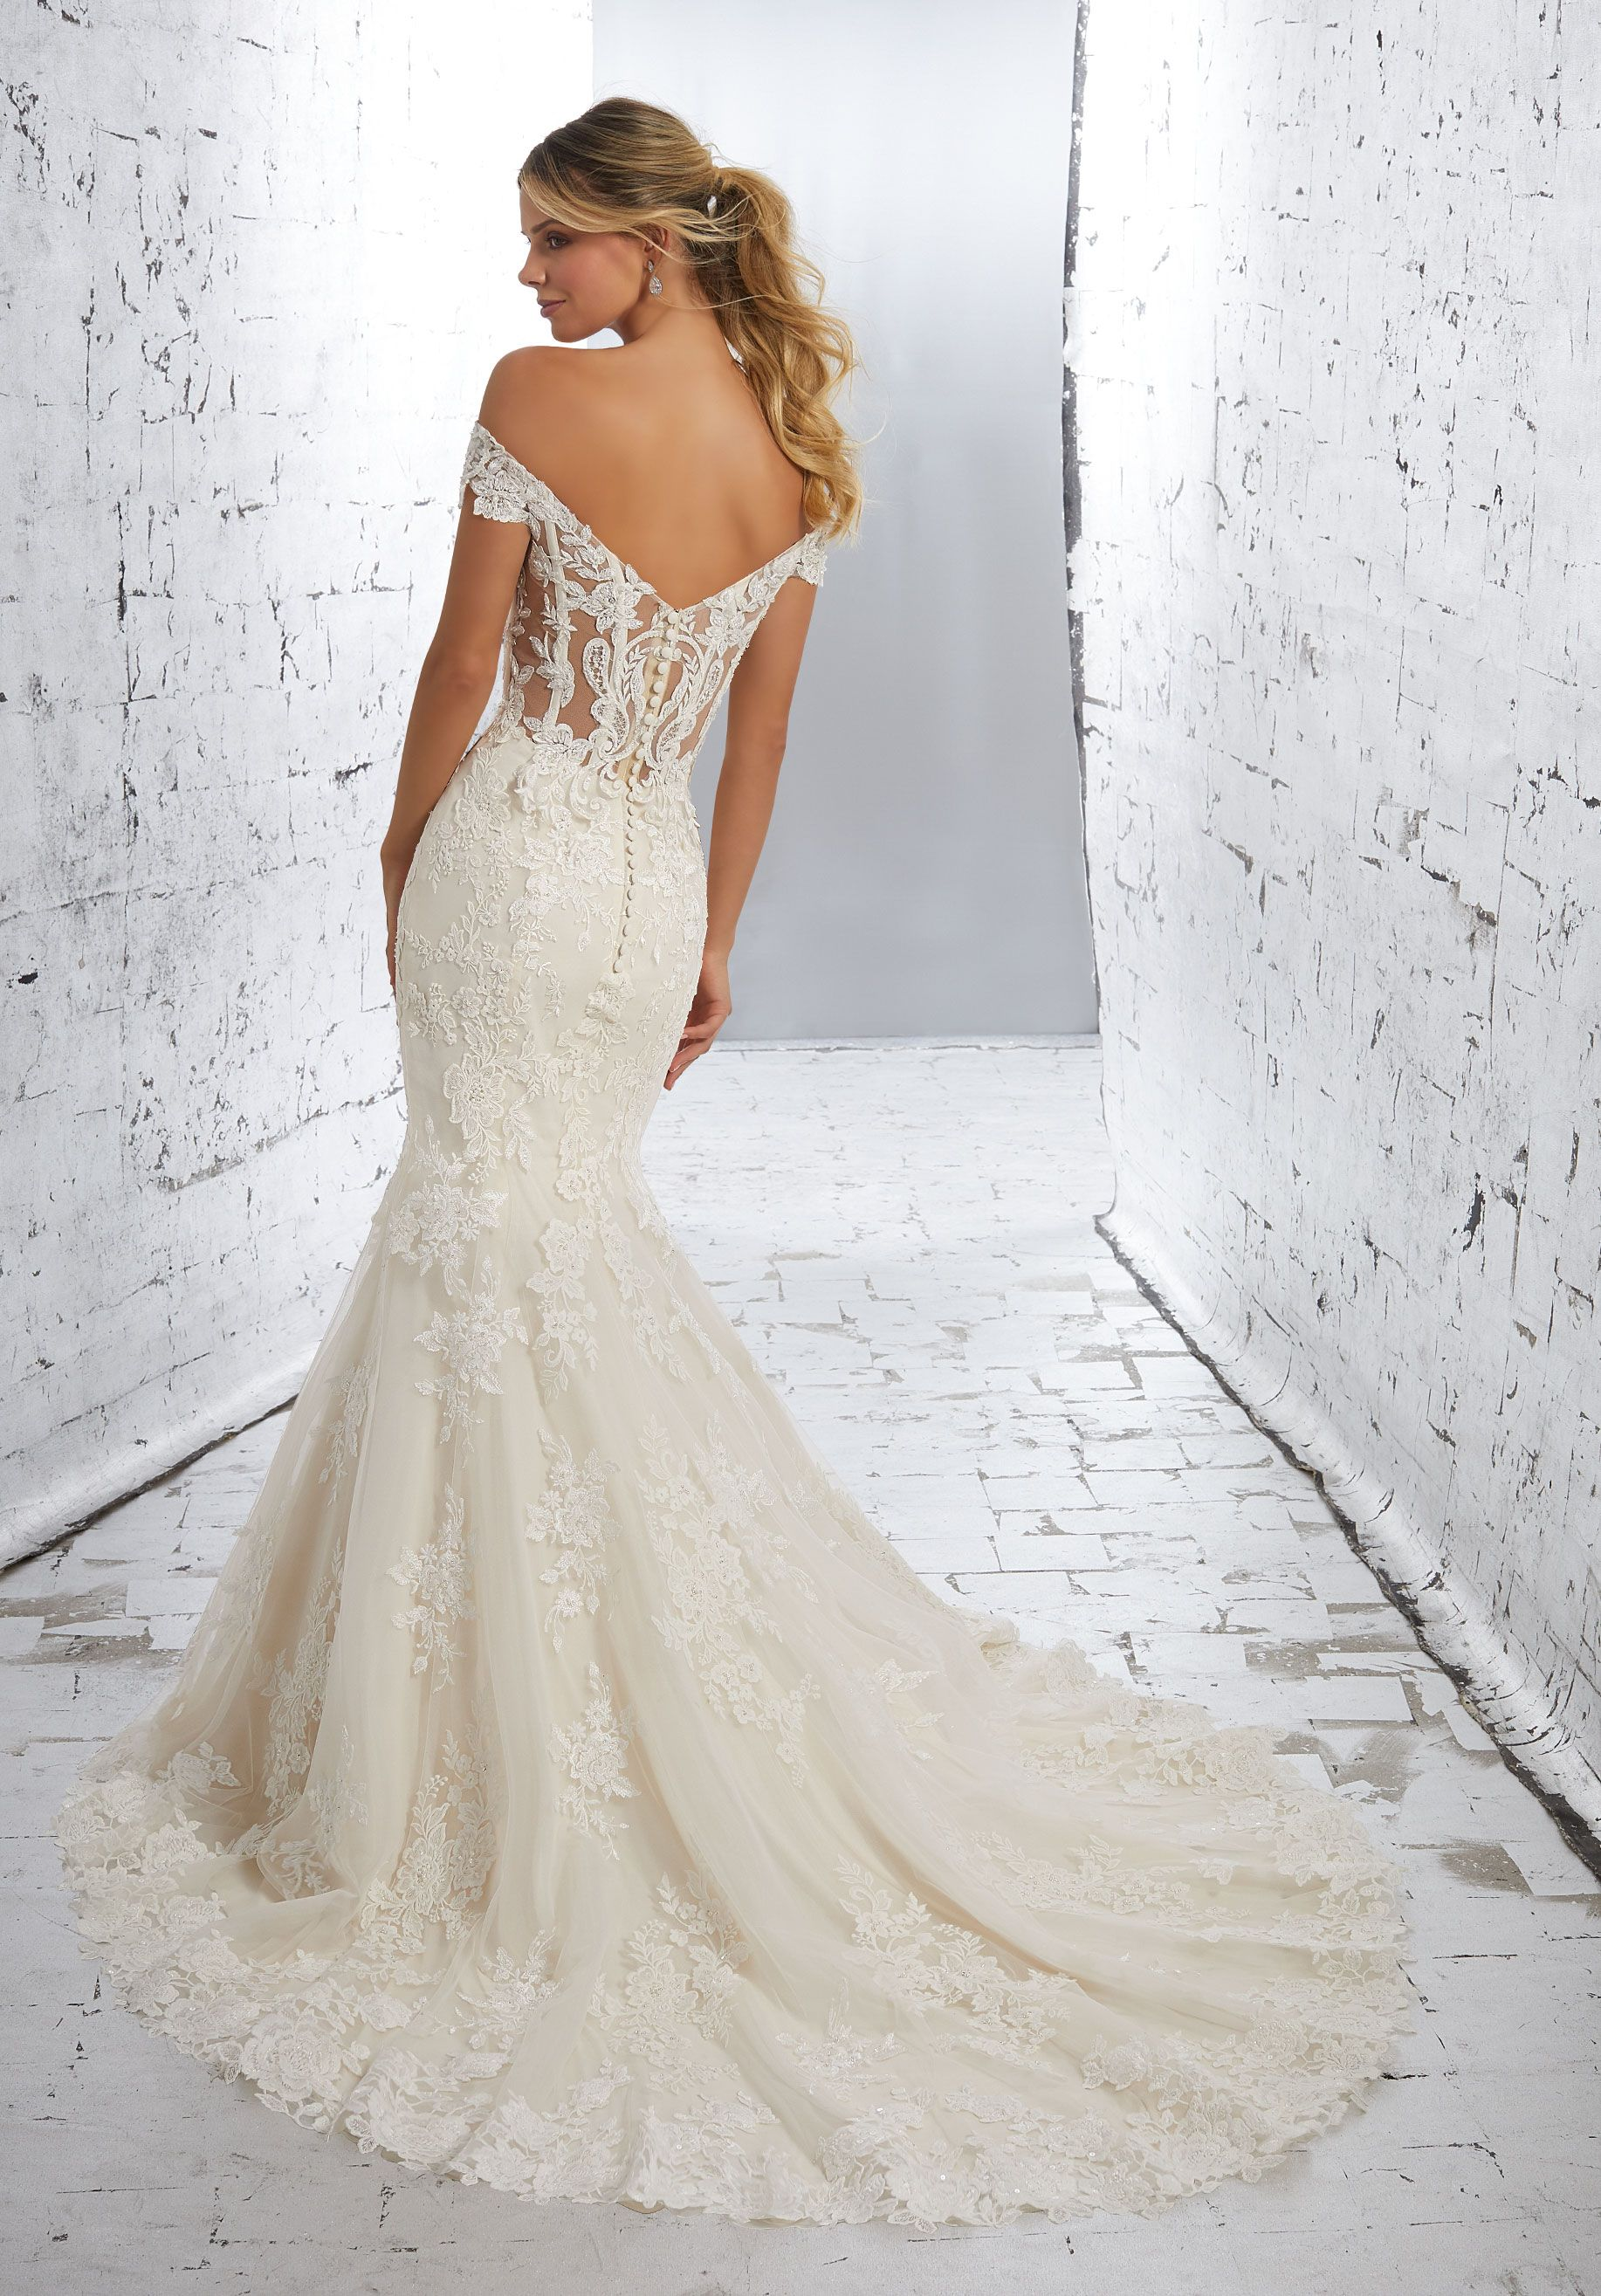 Too much cleavage wedding dress  Luciana Wedding Dress in   Fit u Flare Wedding Dress